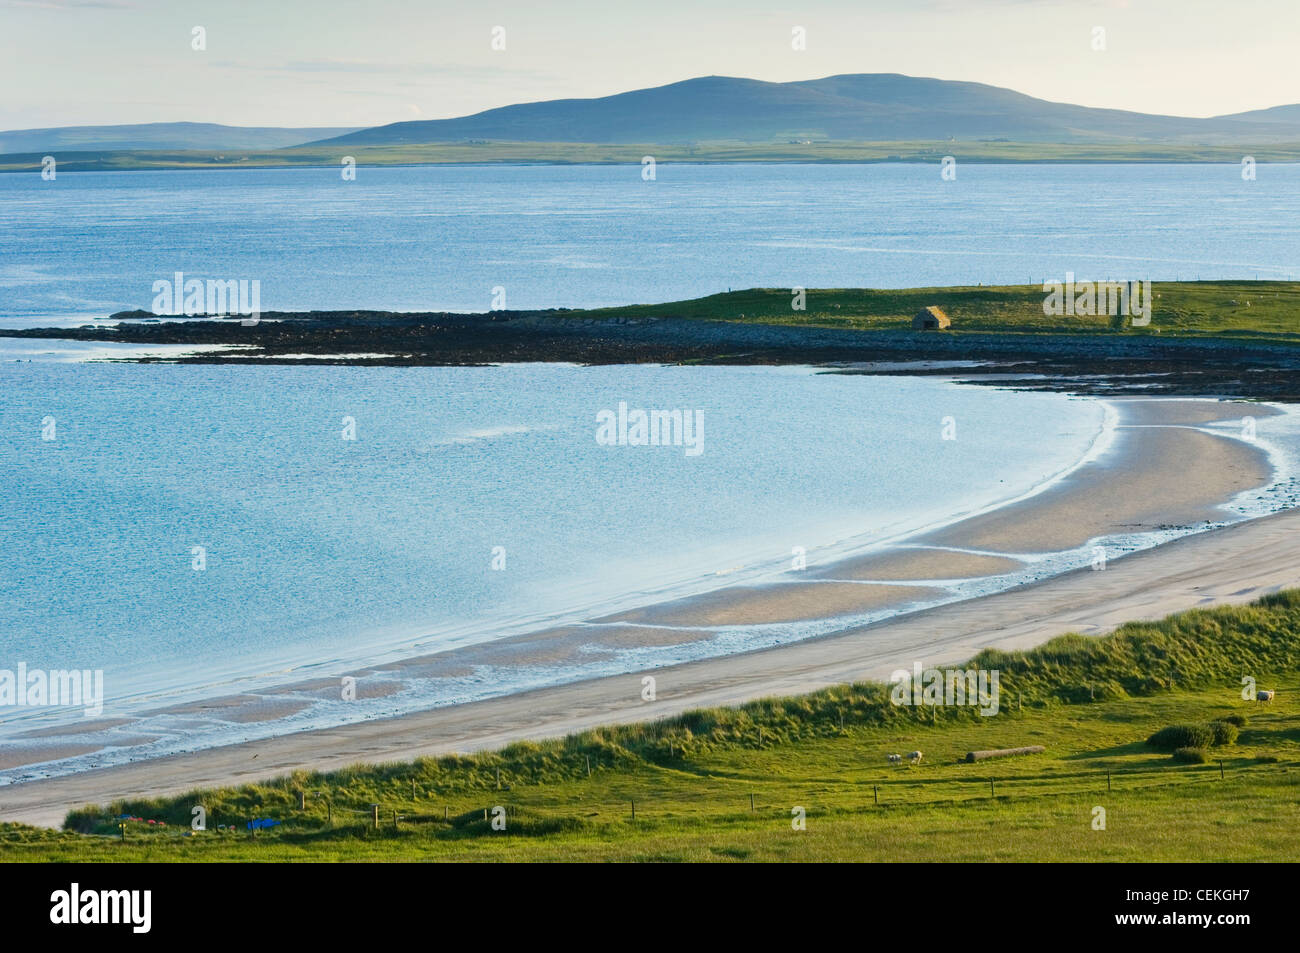 Sealskerry Bay on the island of Eday, Orkney Islands, Scotland. - Stock Image